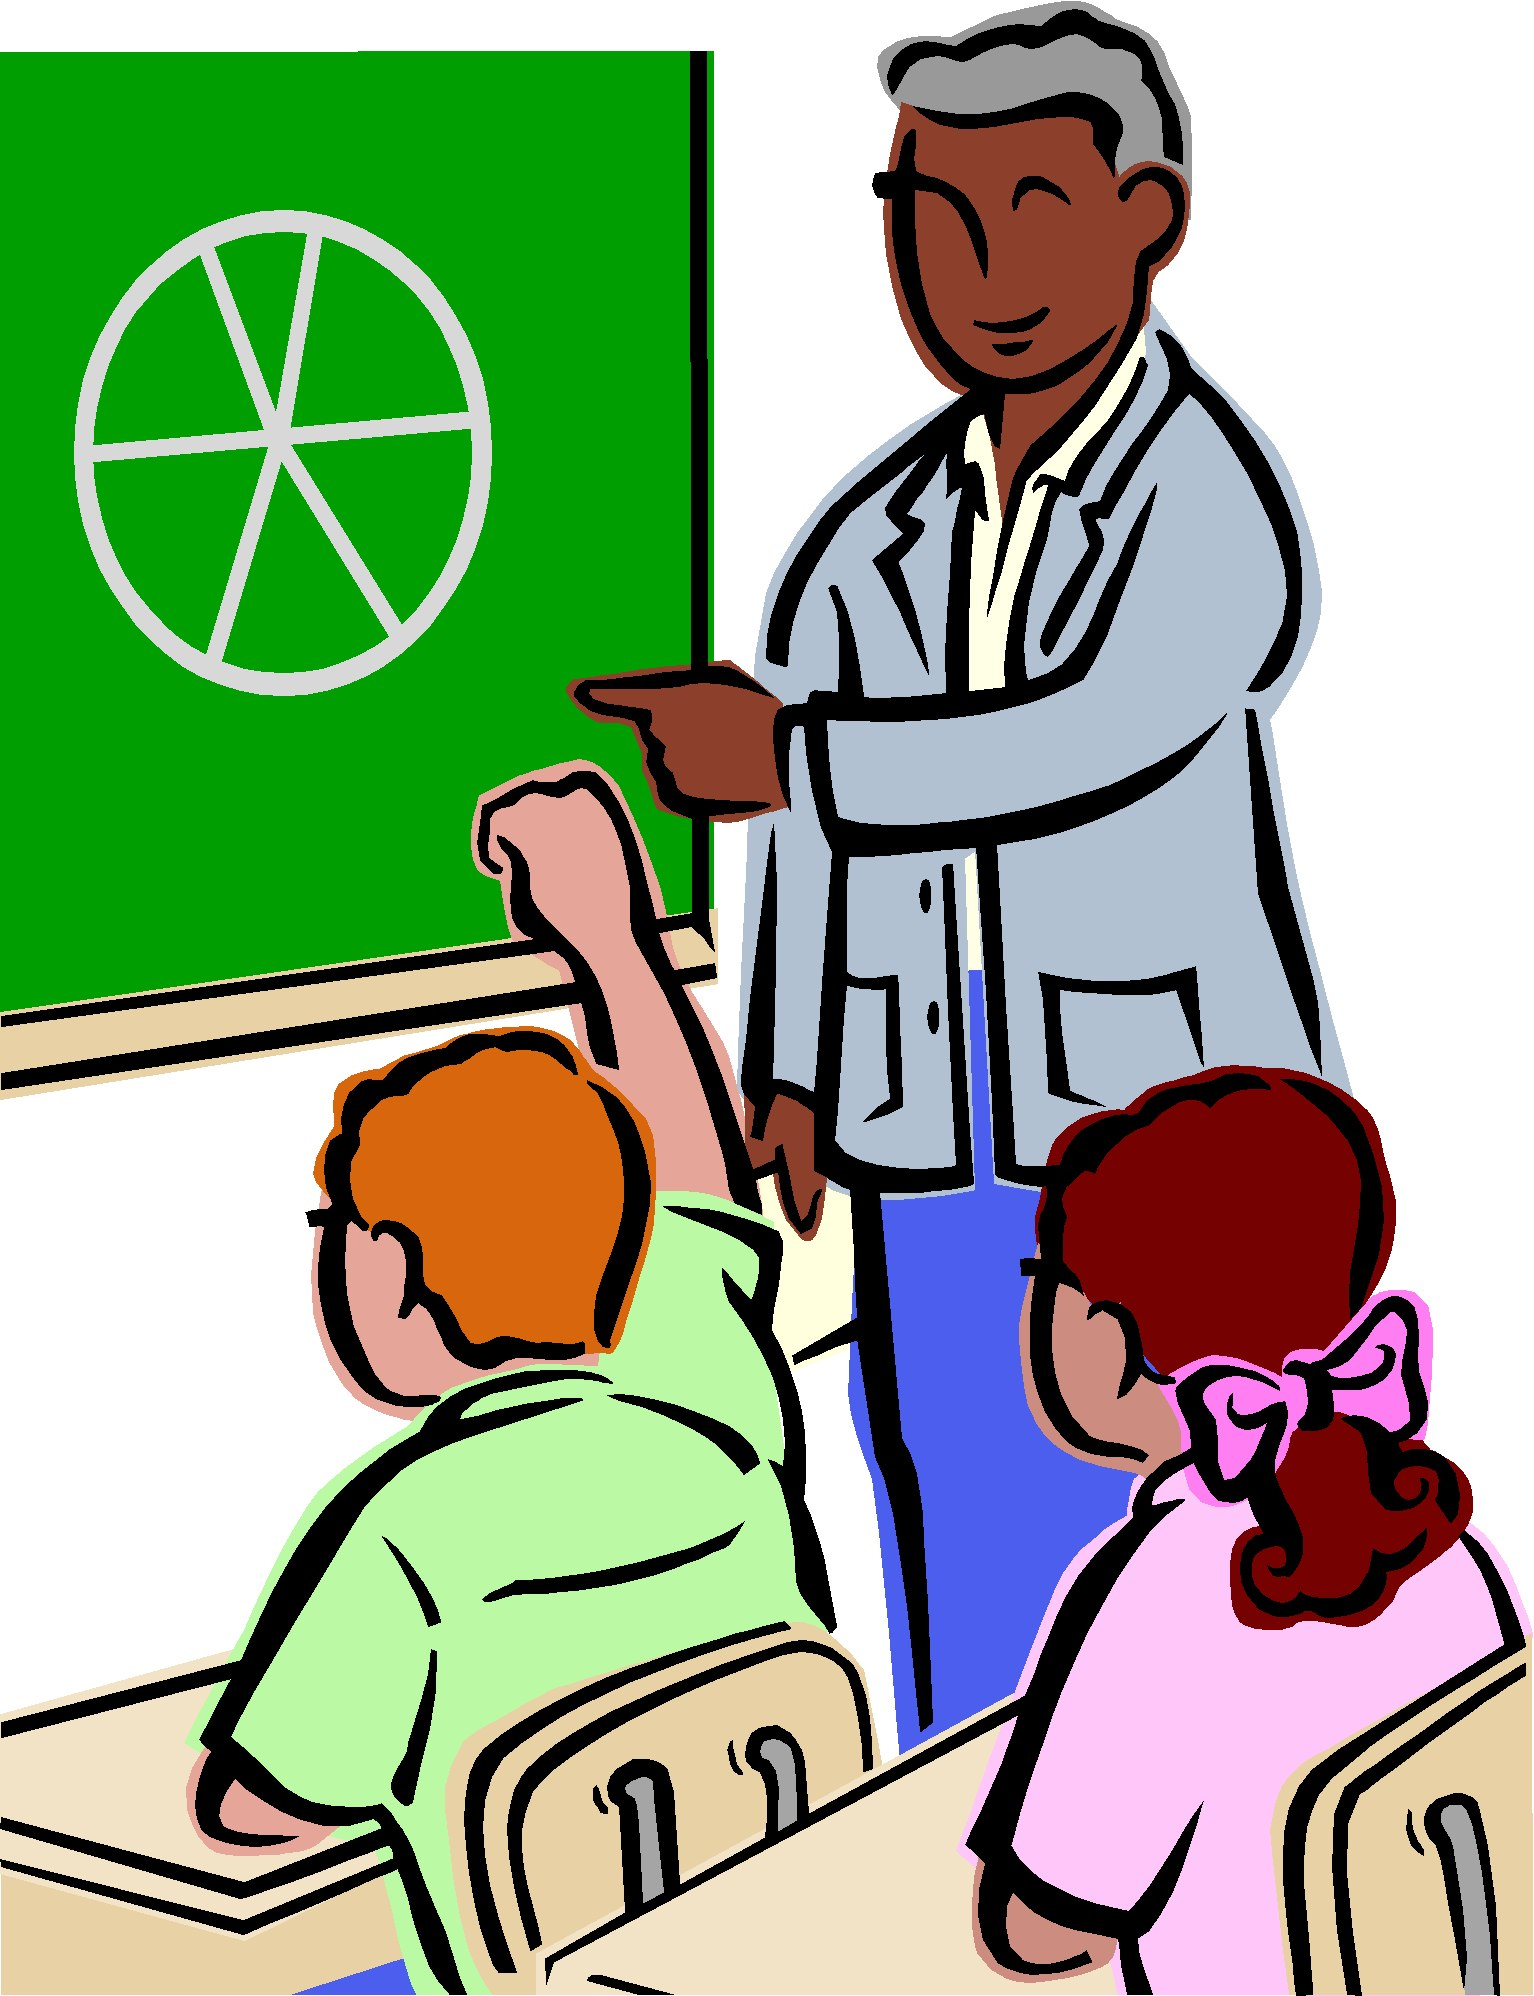 history teacher clipart clipart panda free clipart images rh clipartpanda com clipart of a teacher and students clipart of a teacher and students